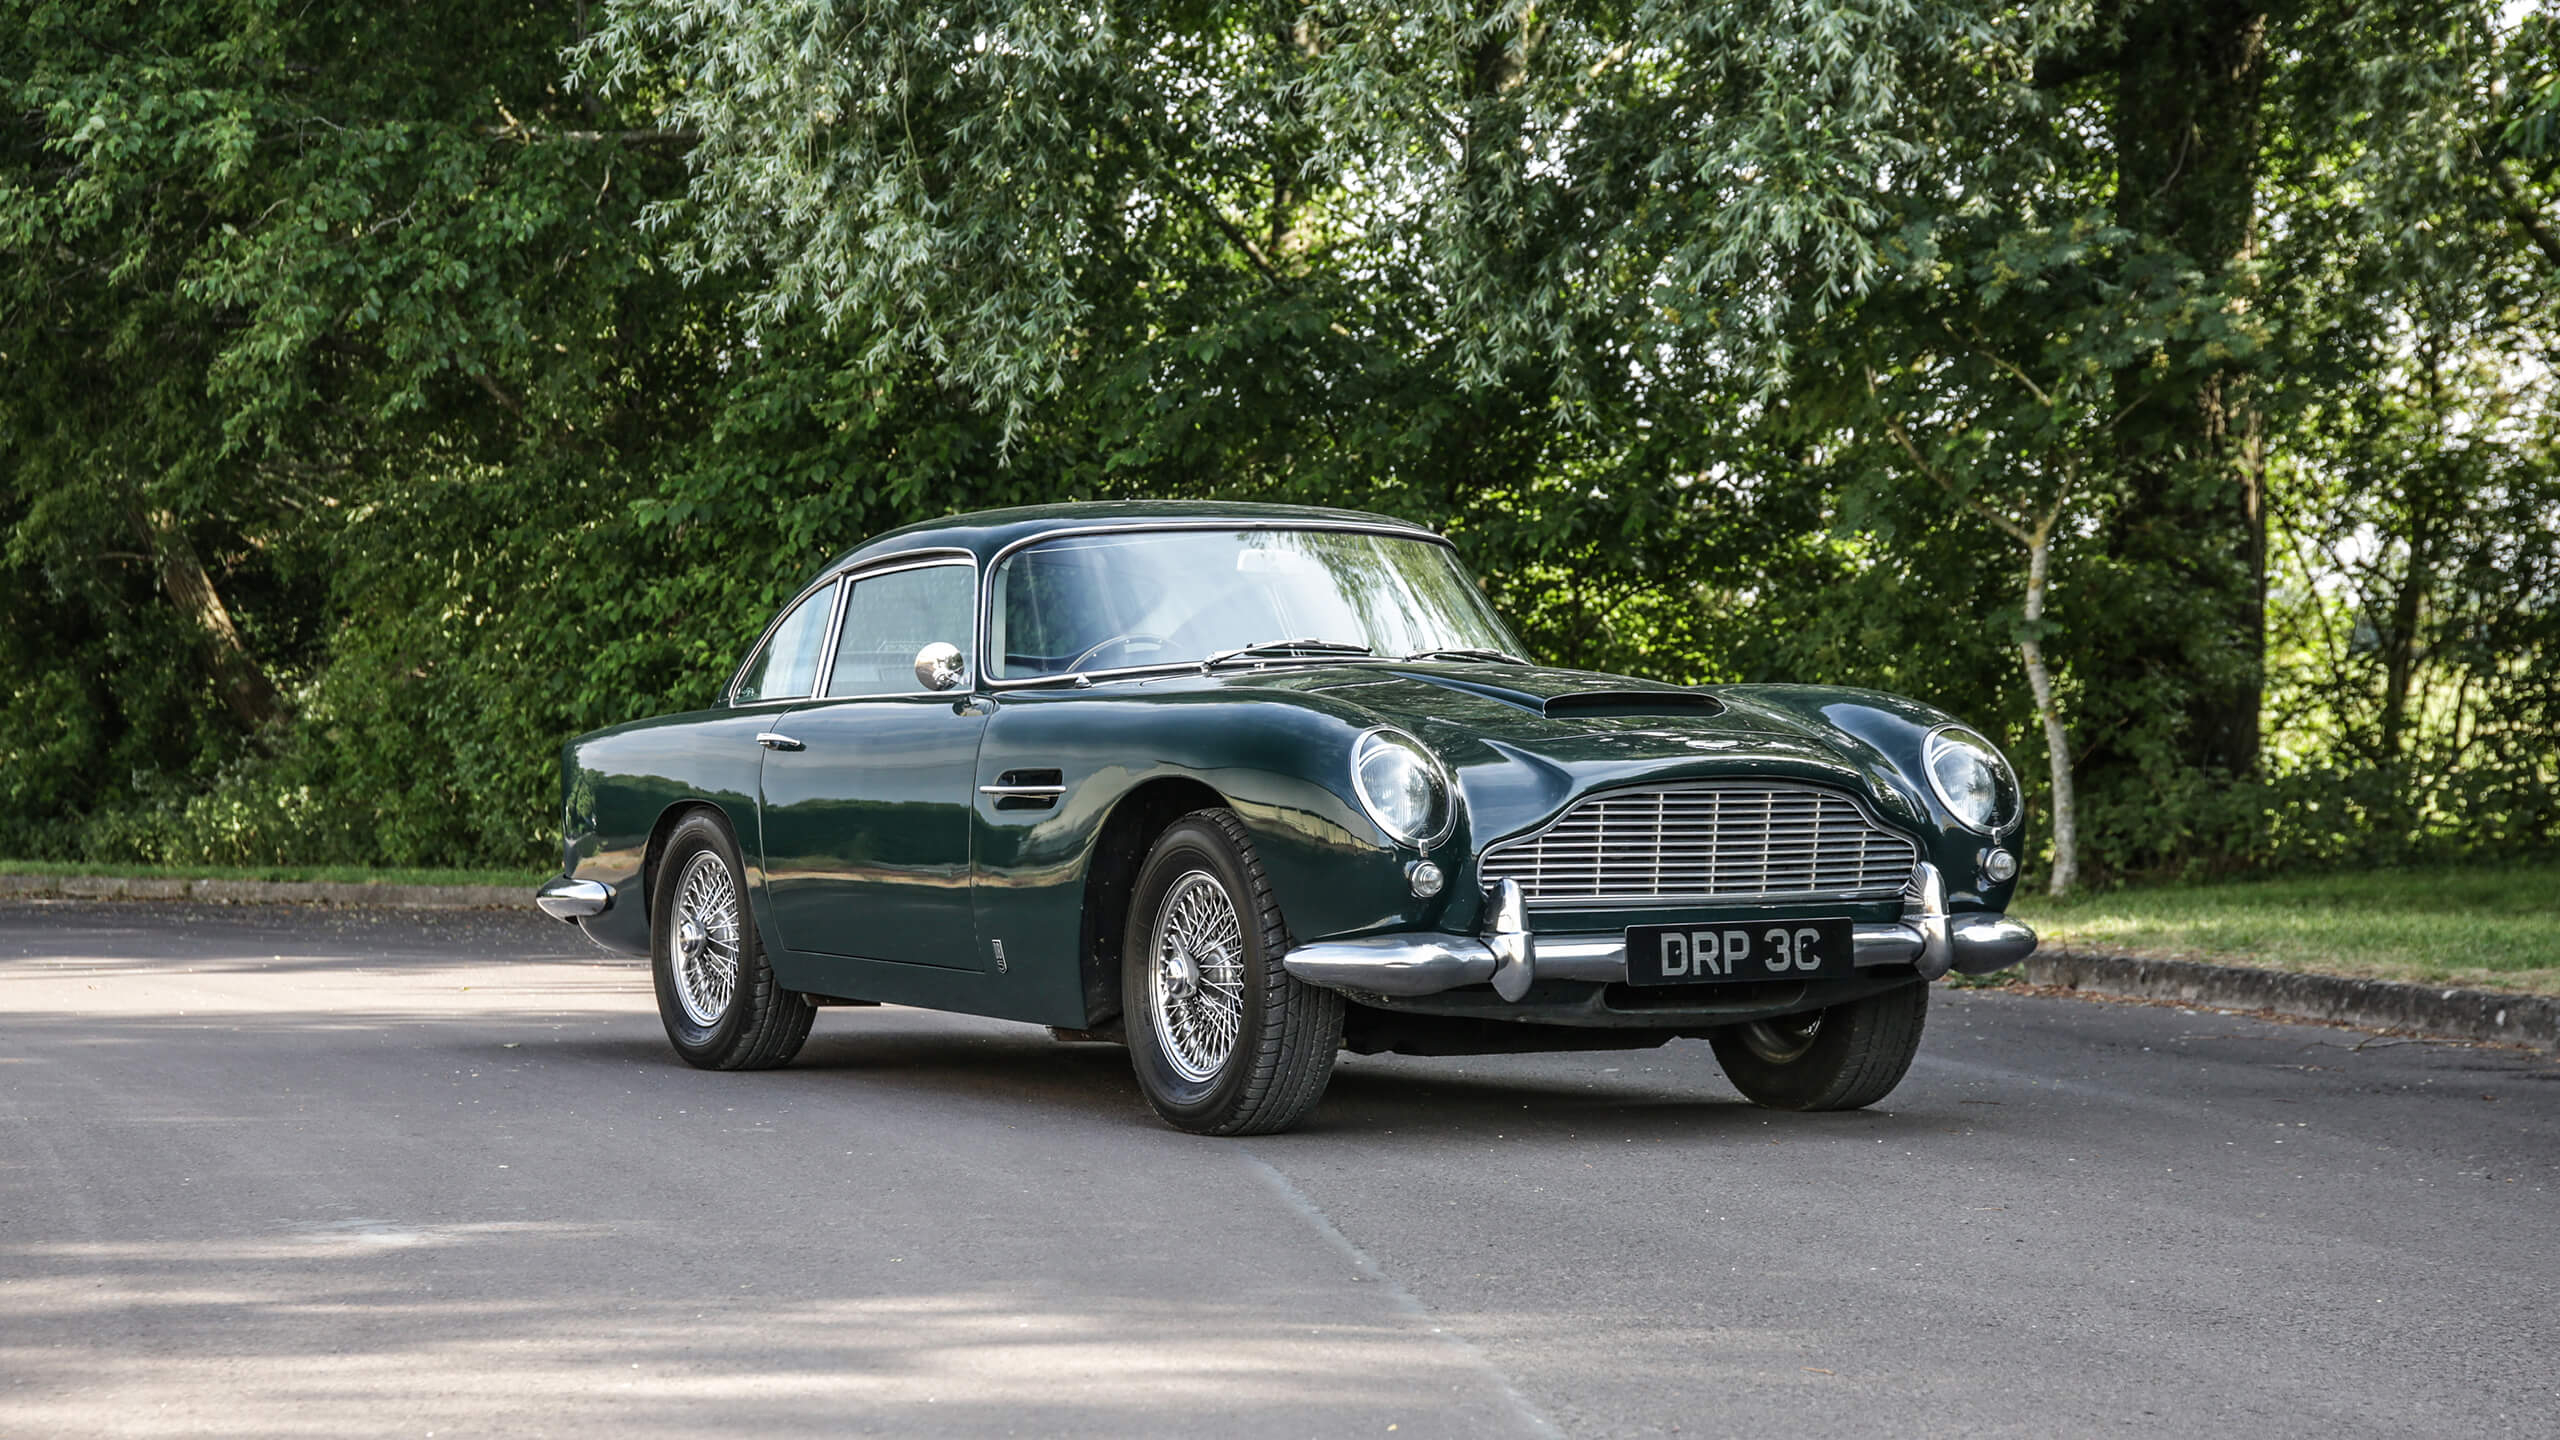 Historics' £6.2m 18 July 2020 auction